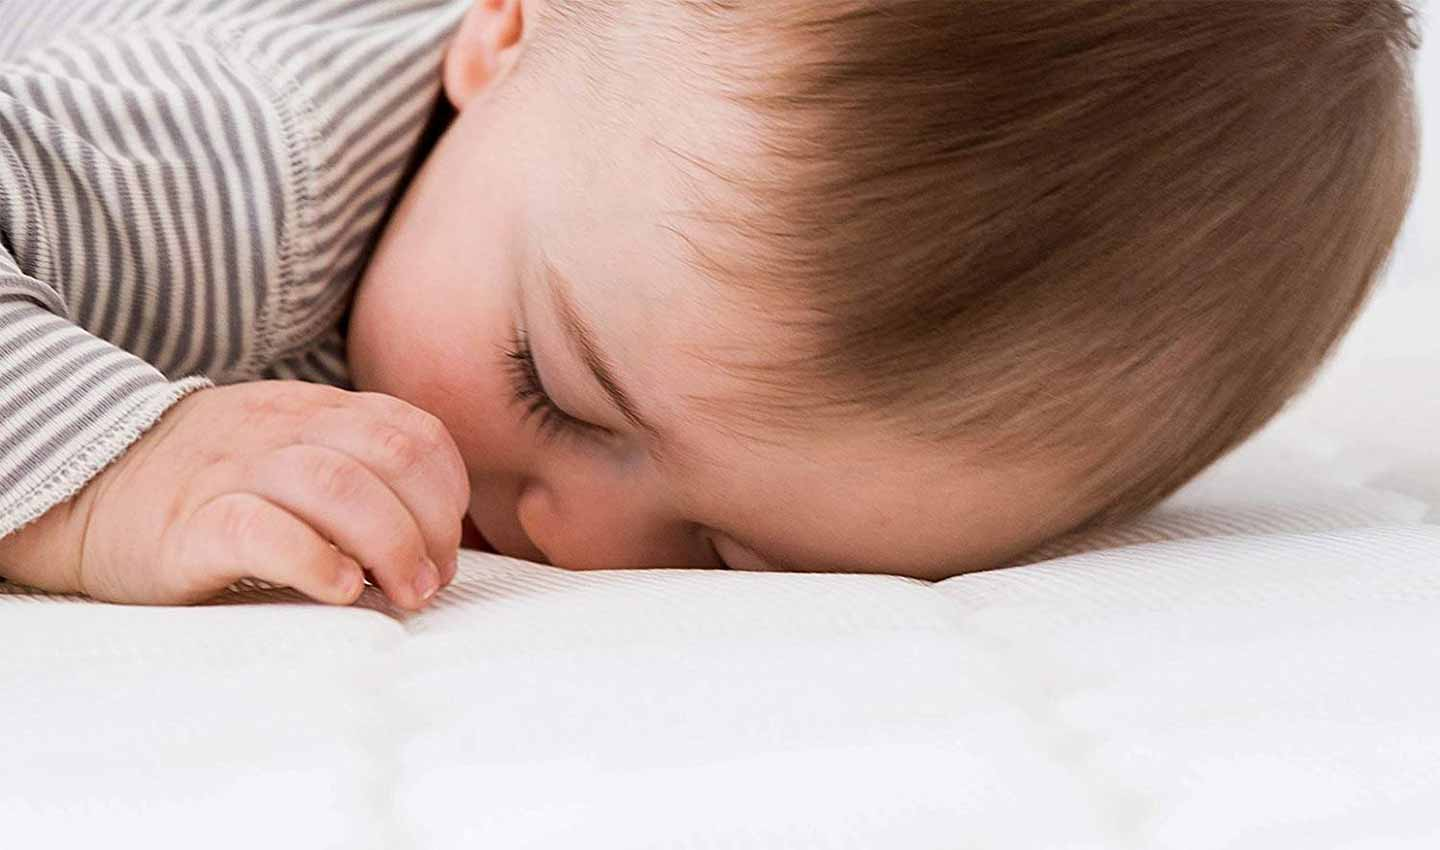 Top 3 Best Breathable Crib Mattresses To Buy In 2020 Safest Top Rated